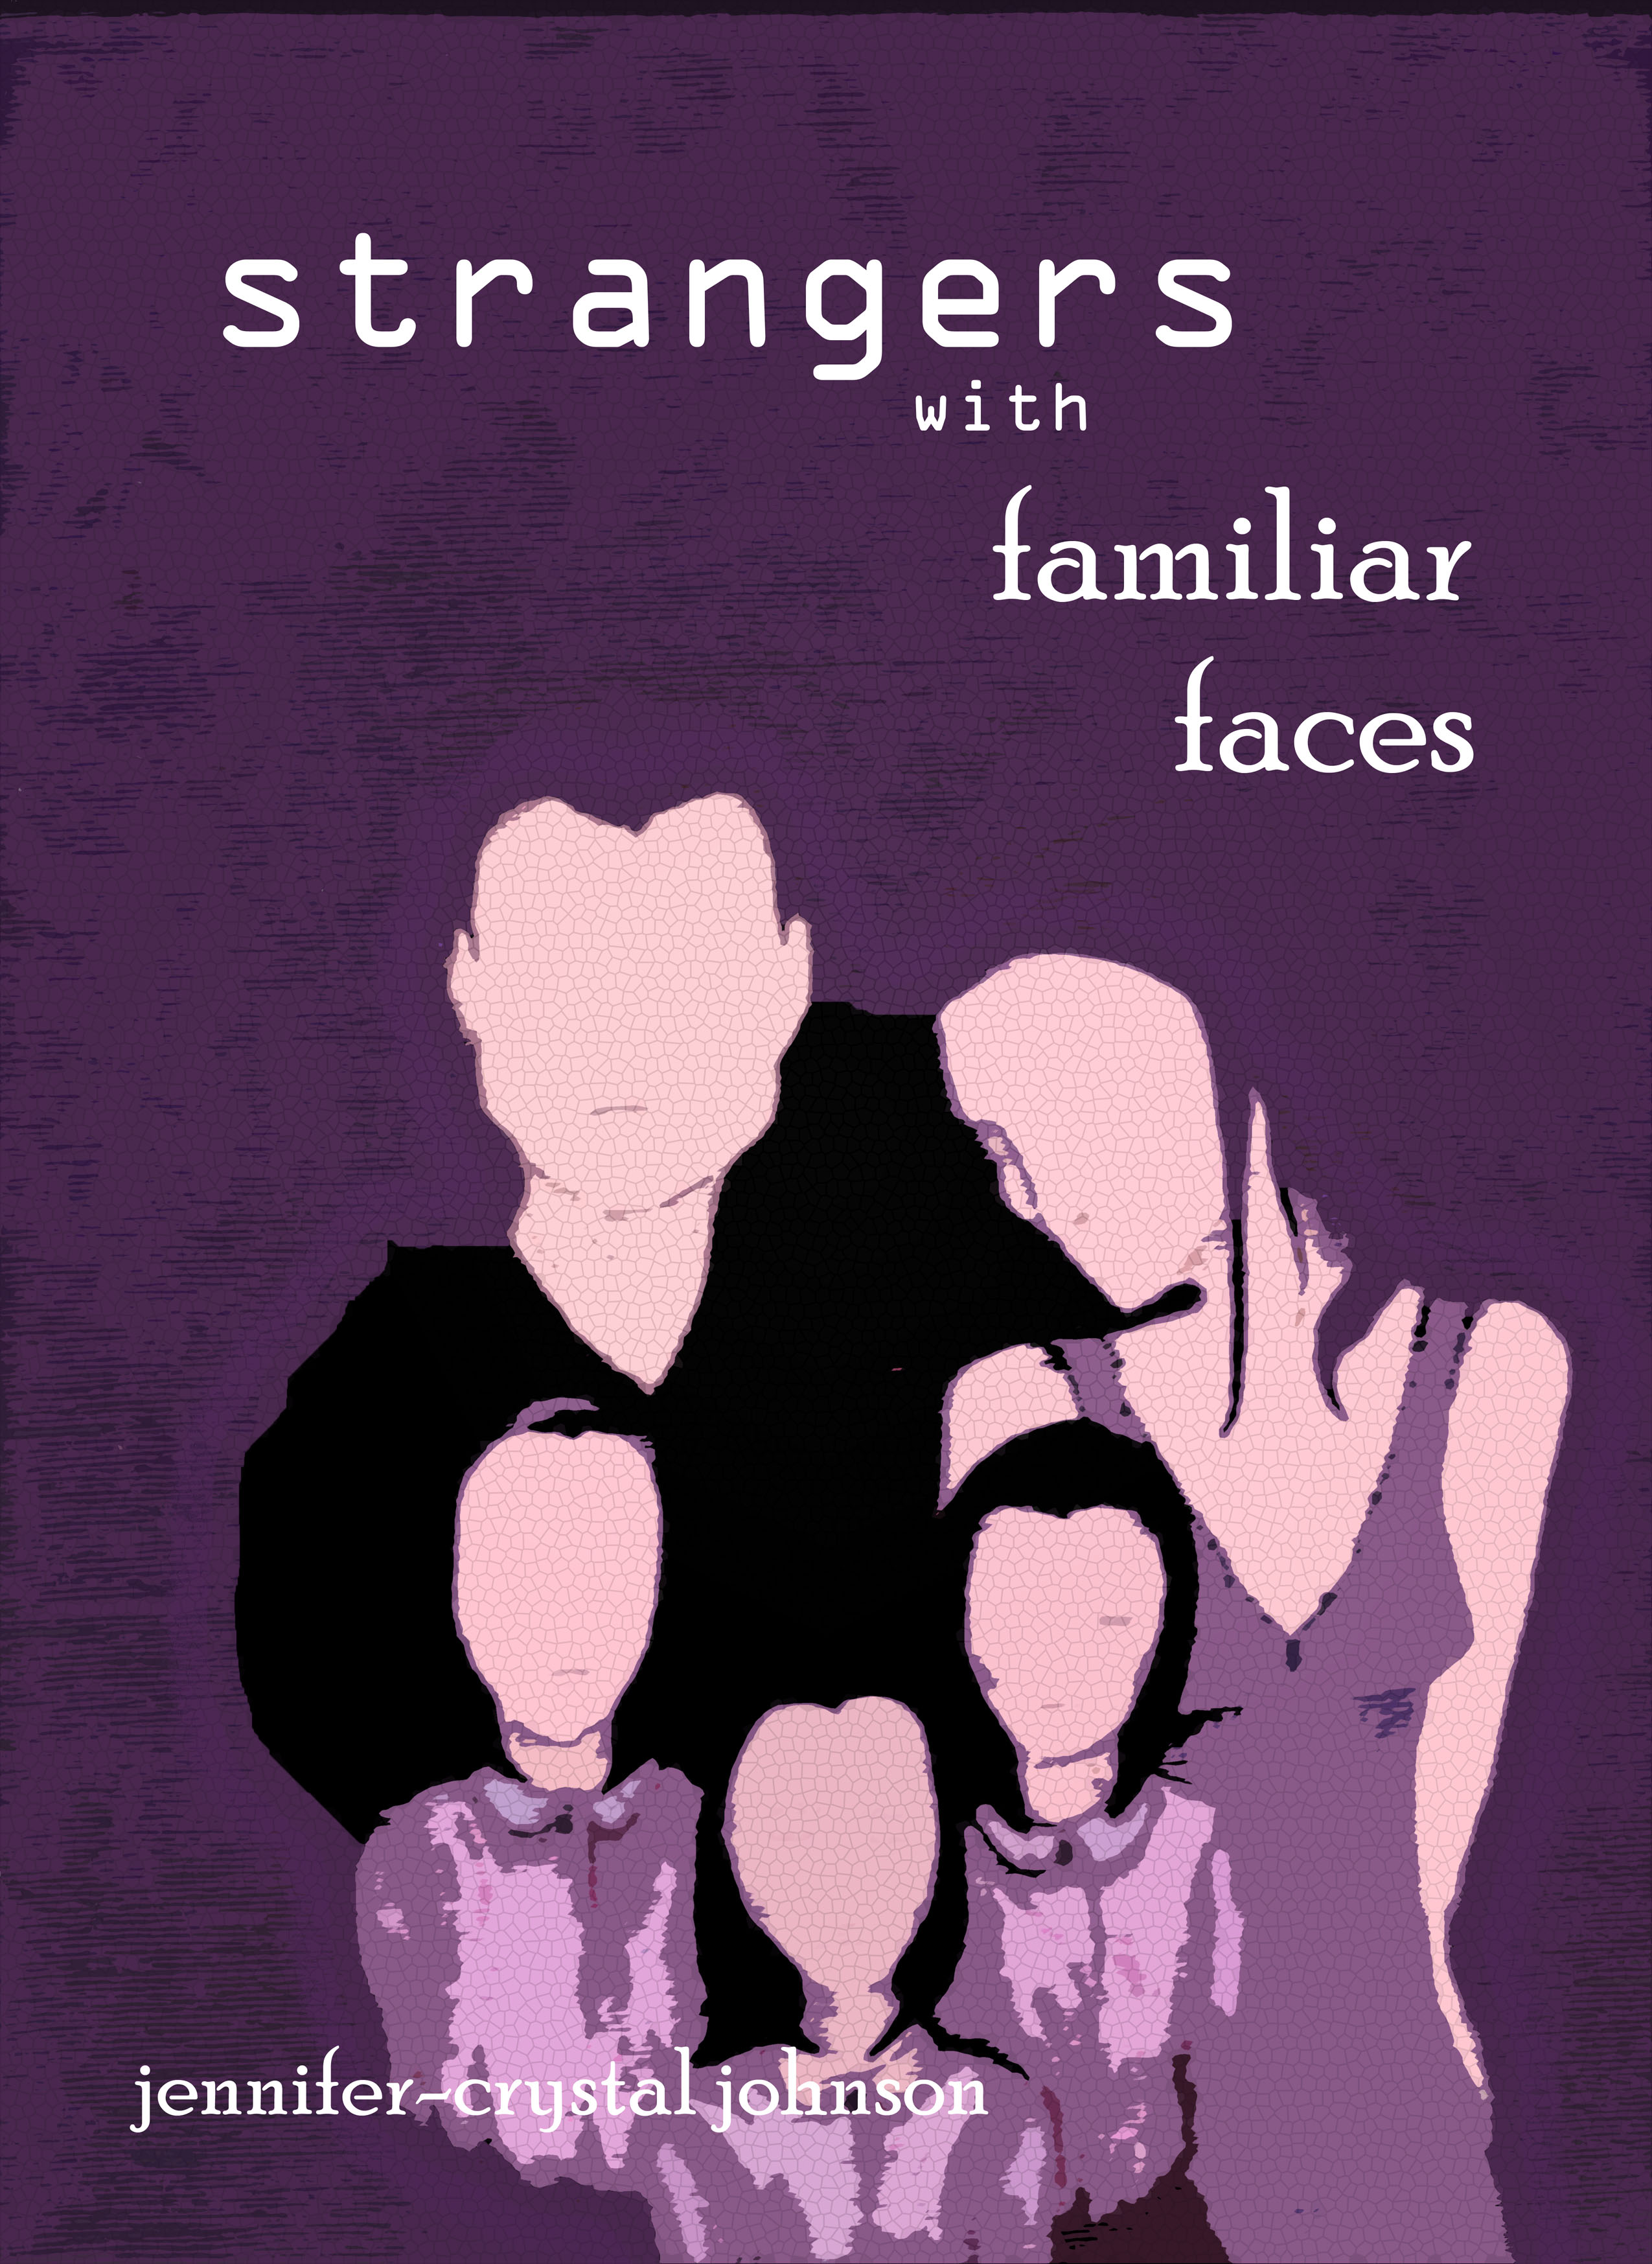 Strangers_20front_20cover_20draft_original